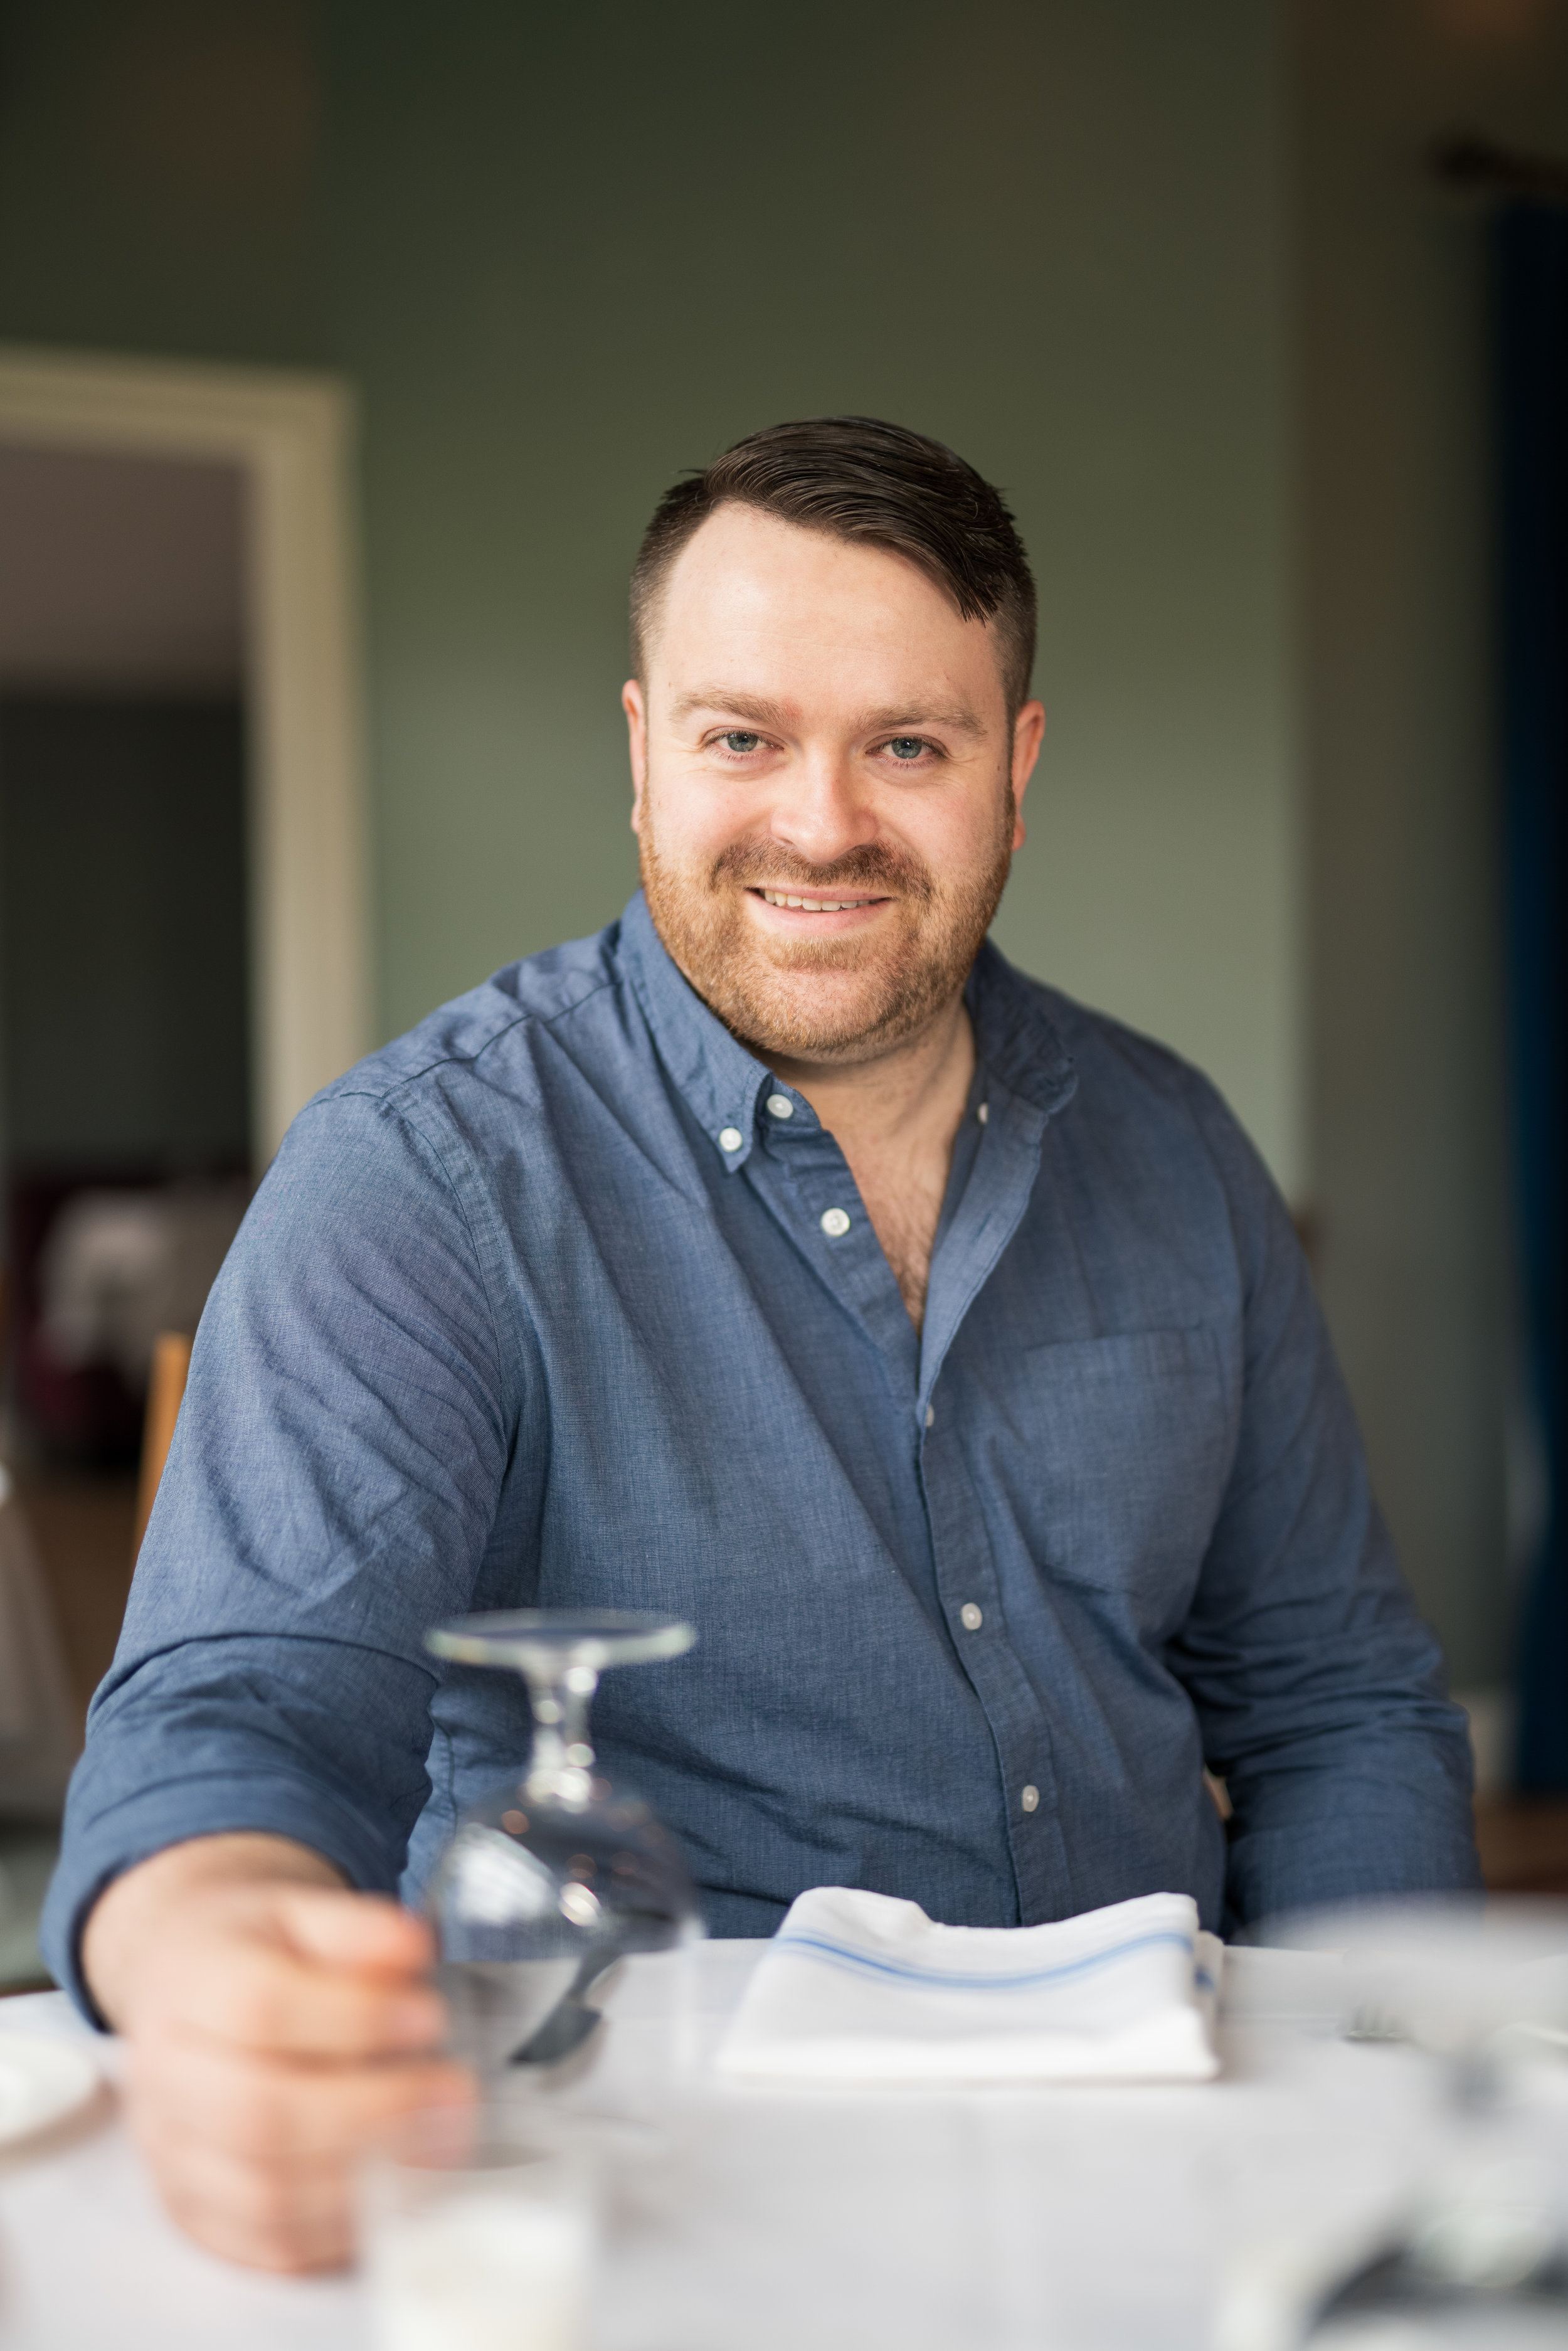 Chris will be 1 of 18 Accountants heading to Intuit's corporate headquarters to help Intuit develop new products and services for accounting professionals